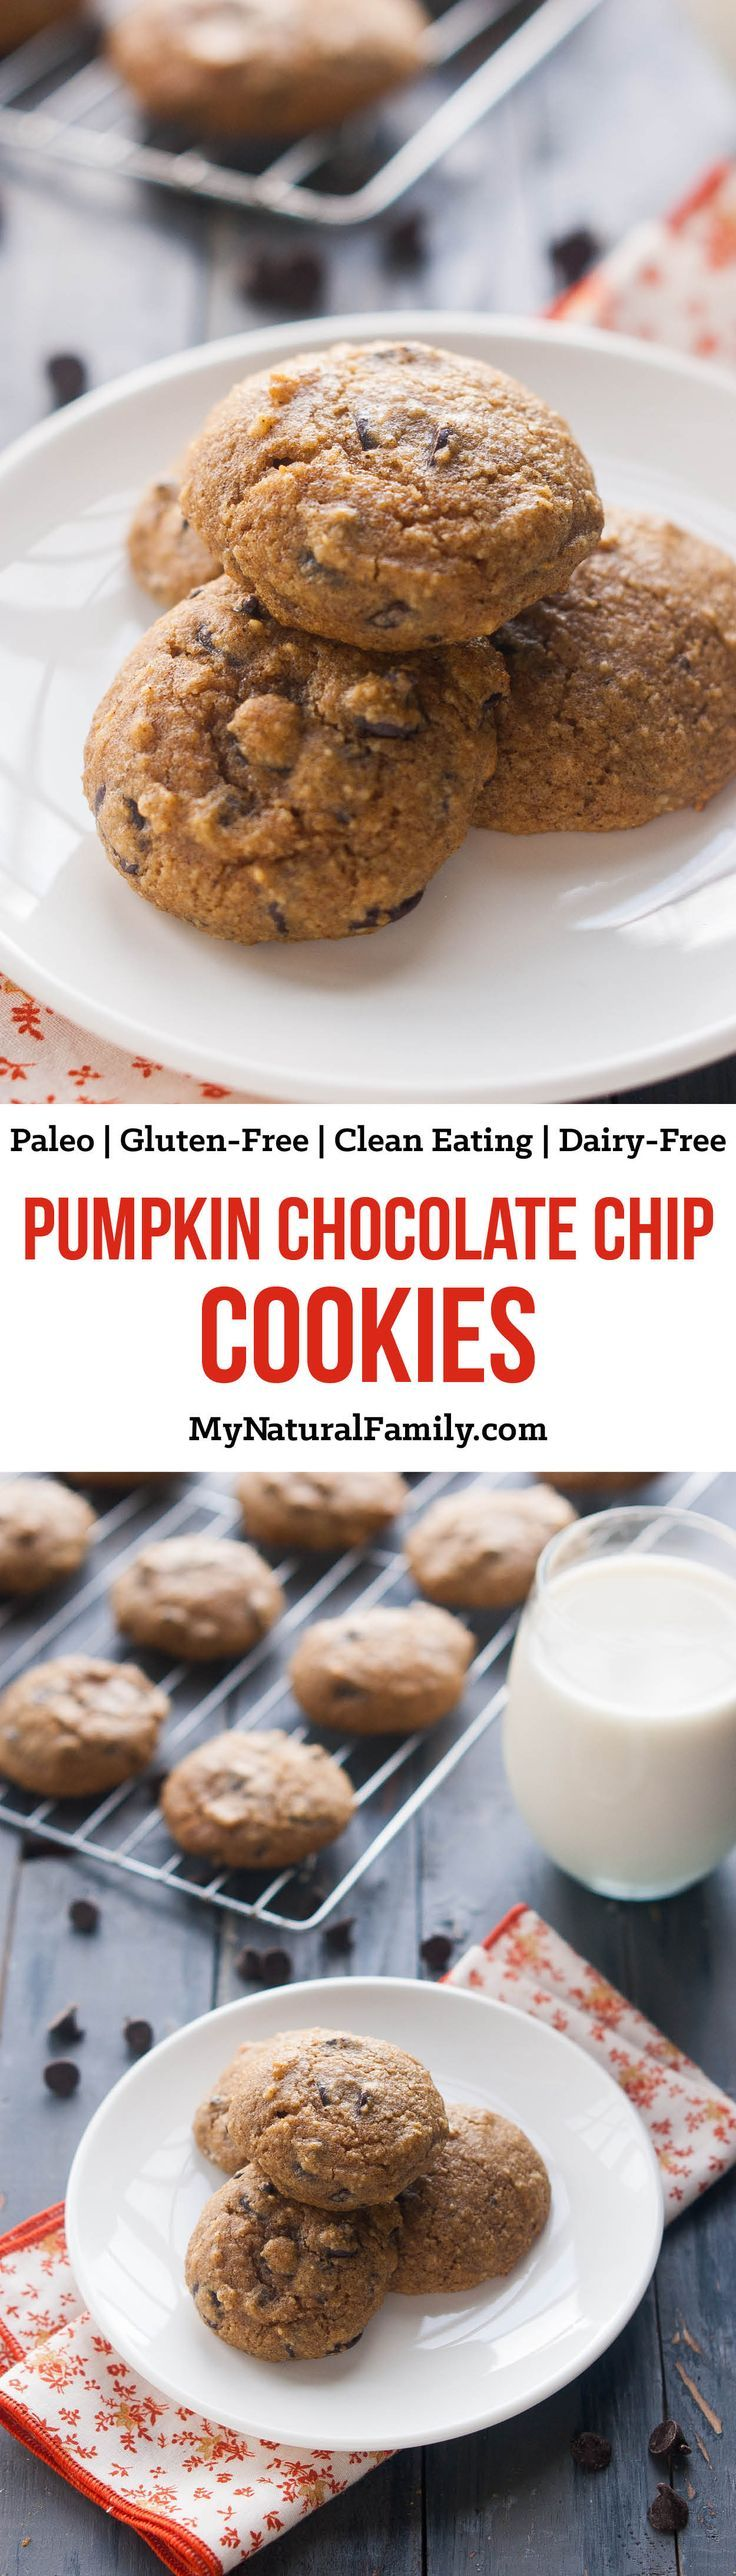 These are really good! I'm so excited to find a good Paleo pumpkin cookie recipe.